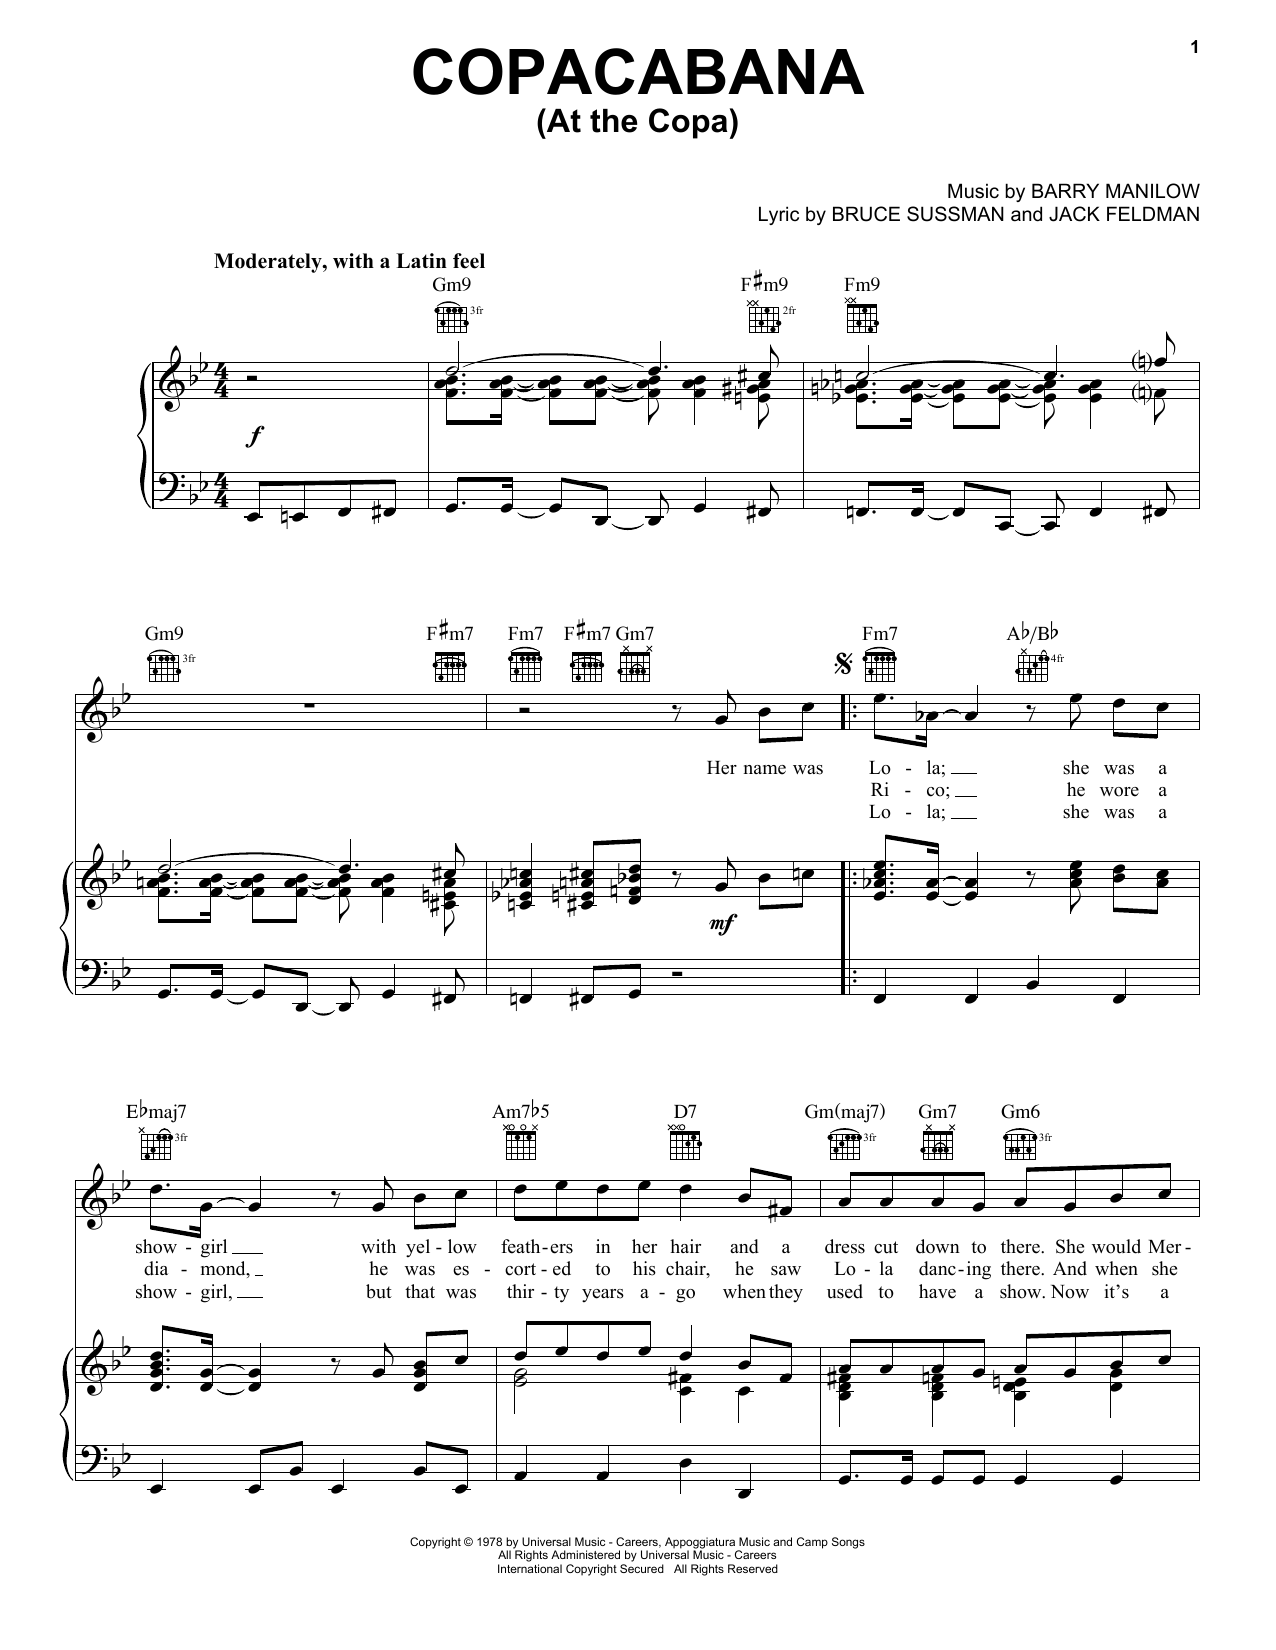 Barry Manilow Copacabana (At The Copa) sheet music notes and chords. Download Printable PDF.